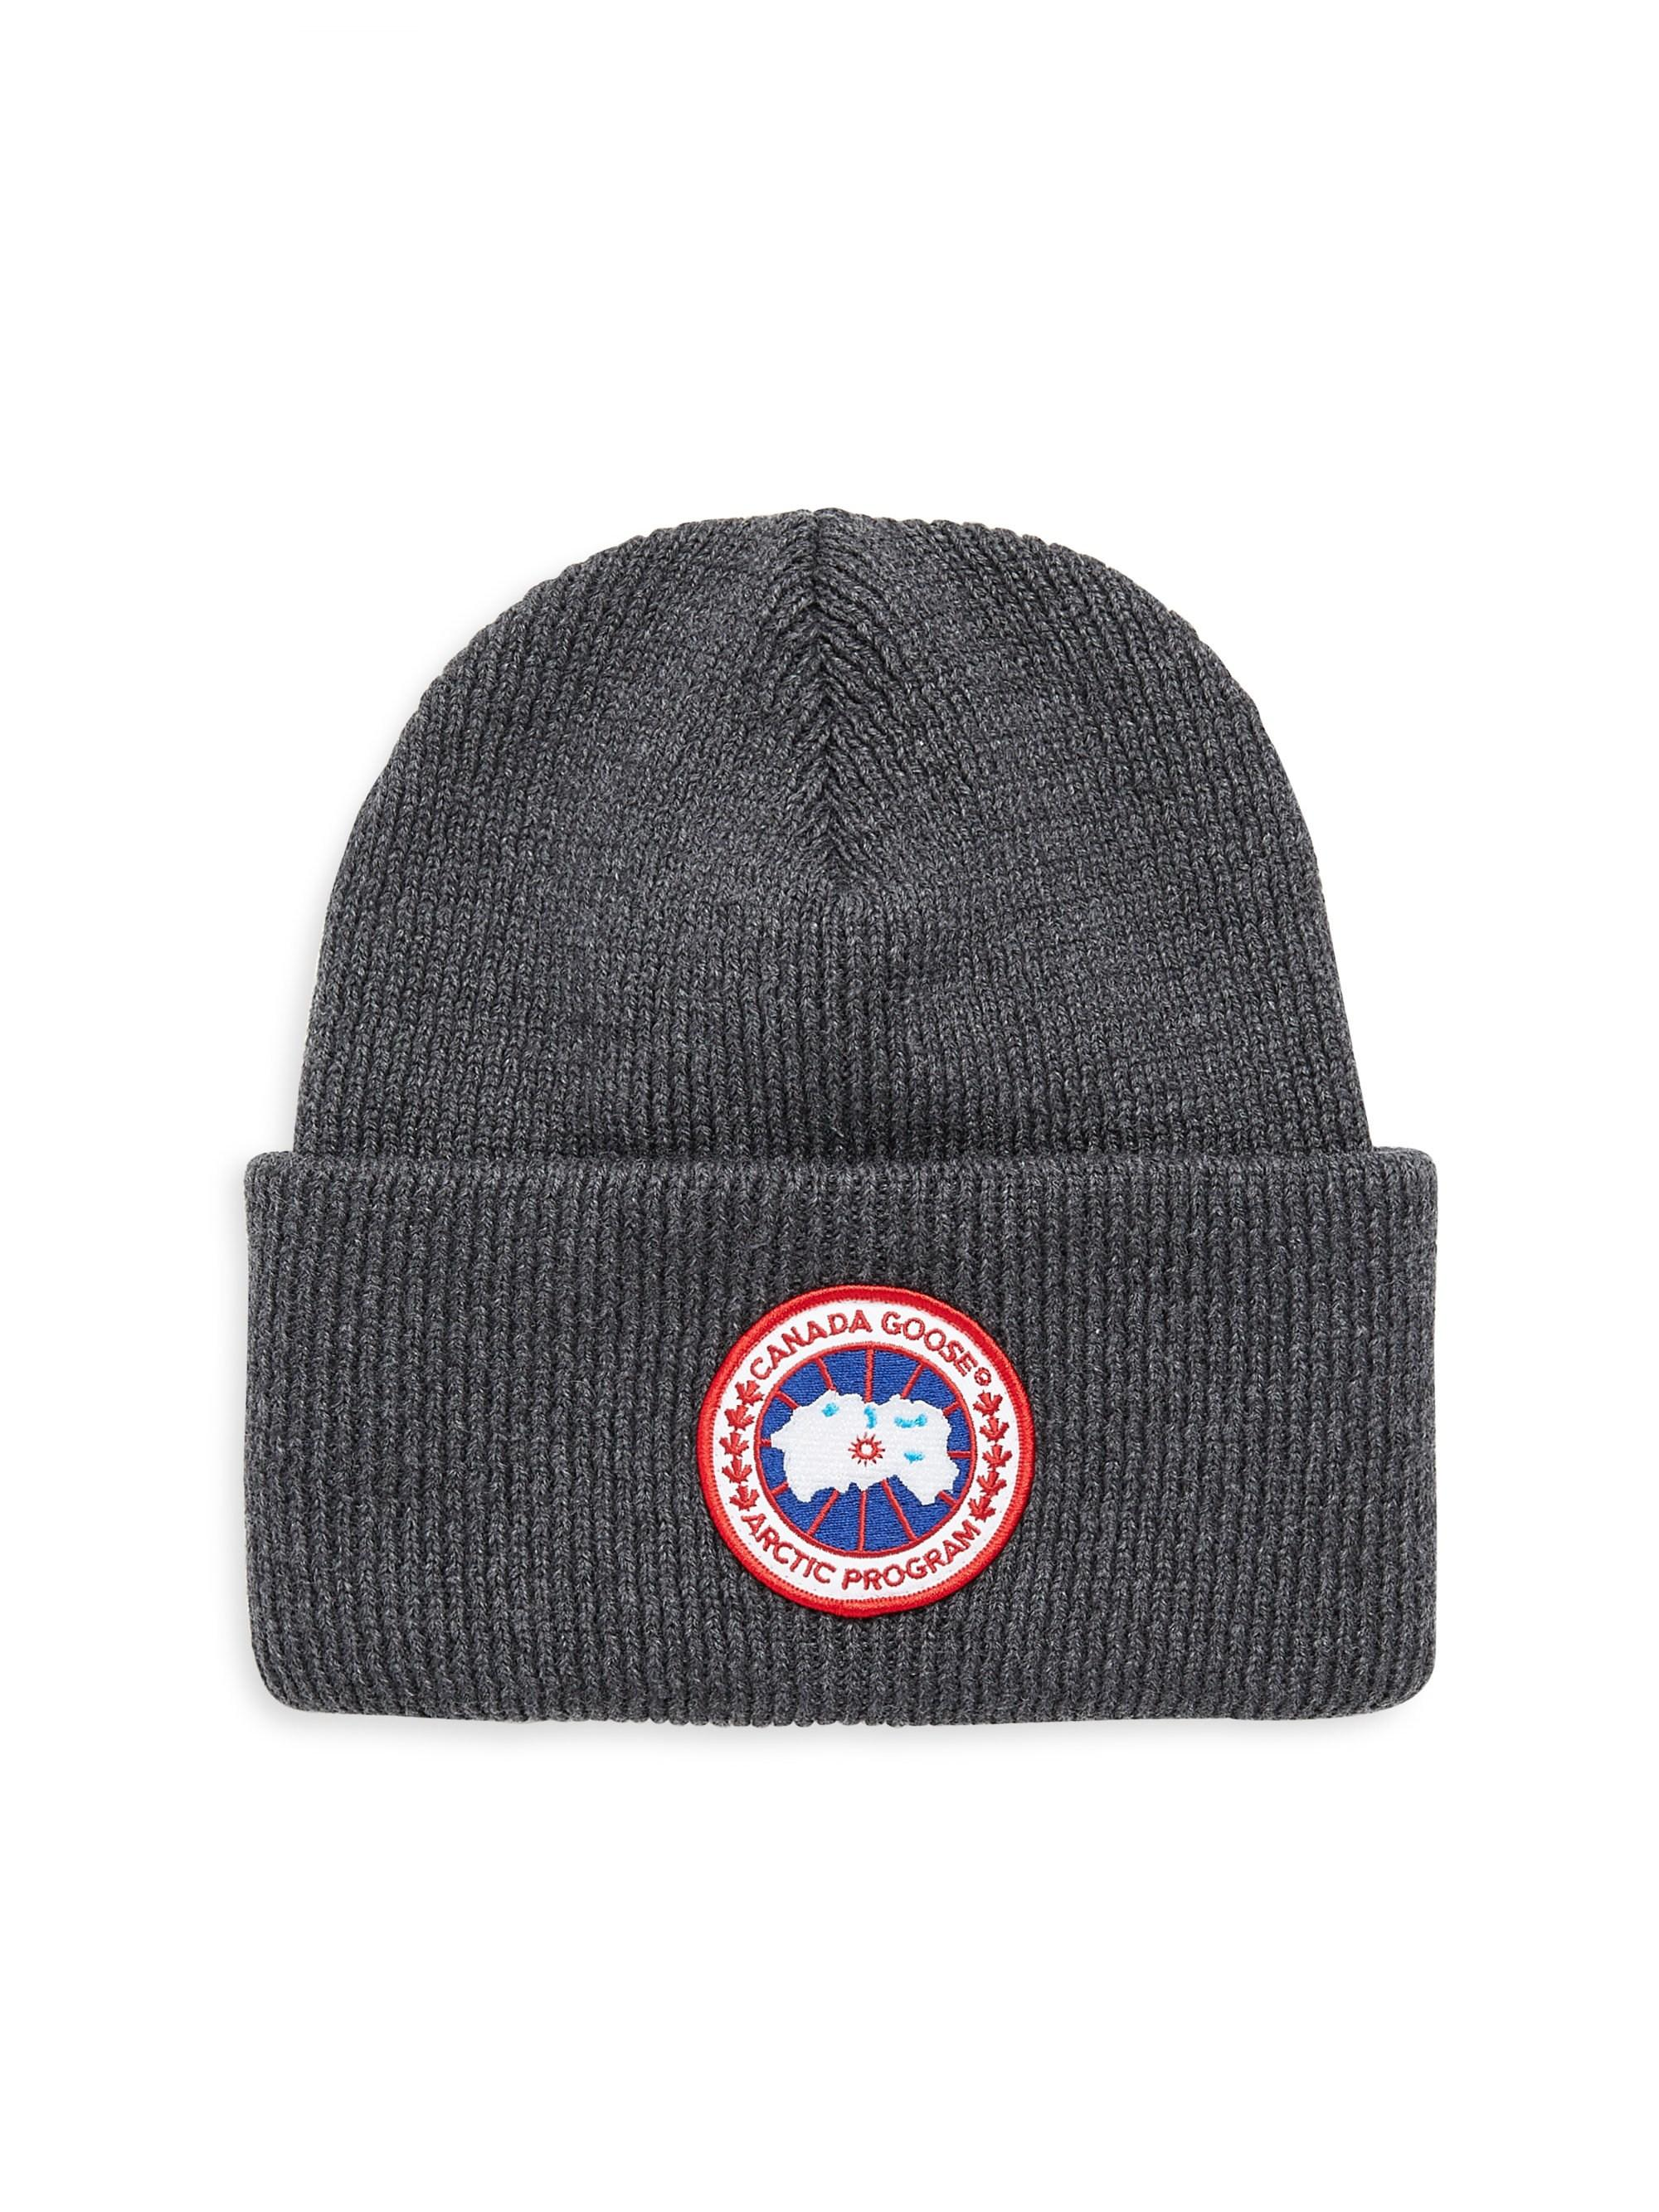 93ed400a40b Lyst - Canada Goose Artic Disc Torque Beanie in Gray for Men - Save 50%